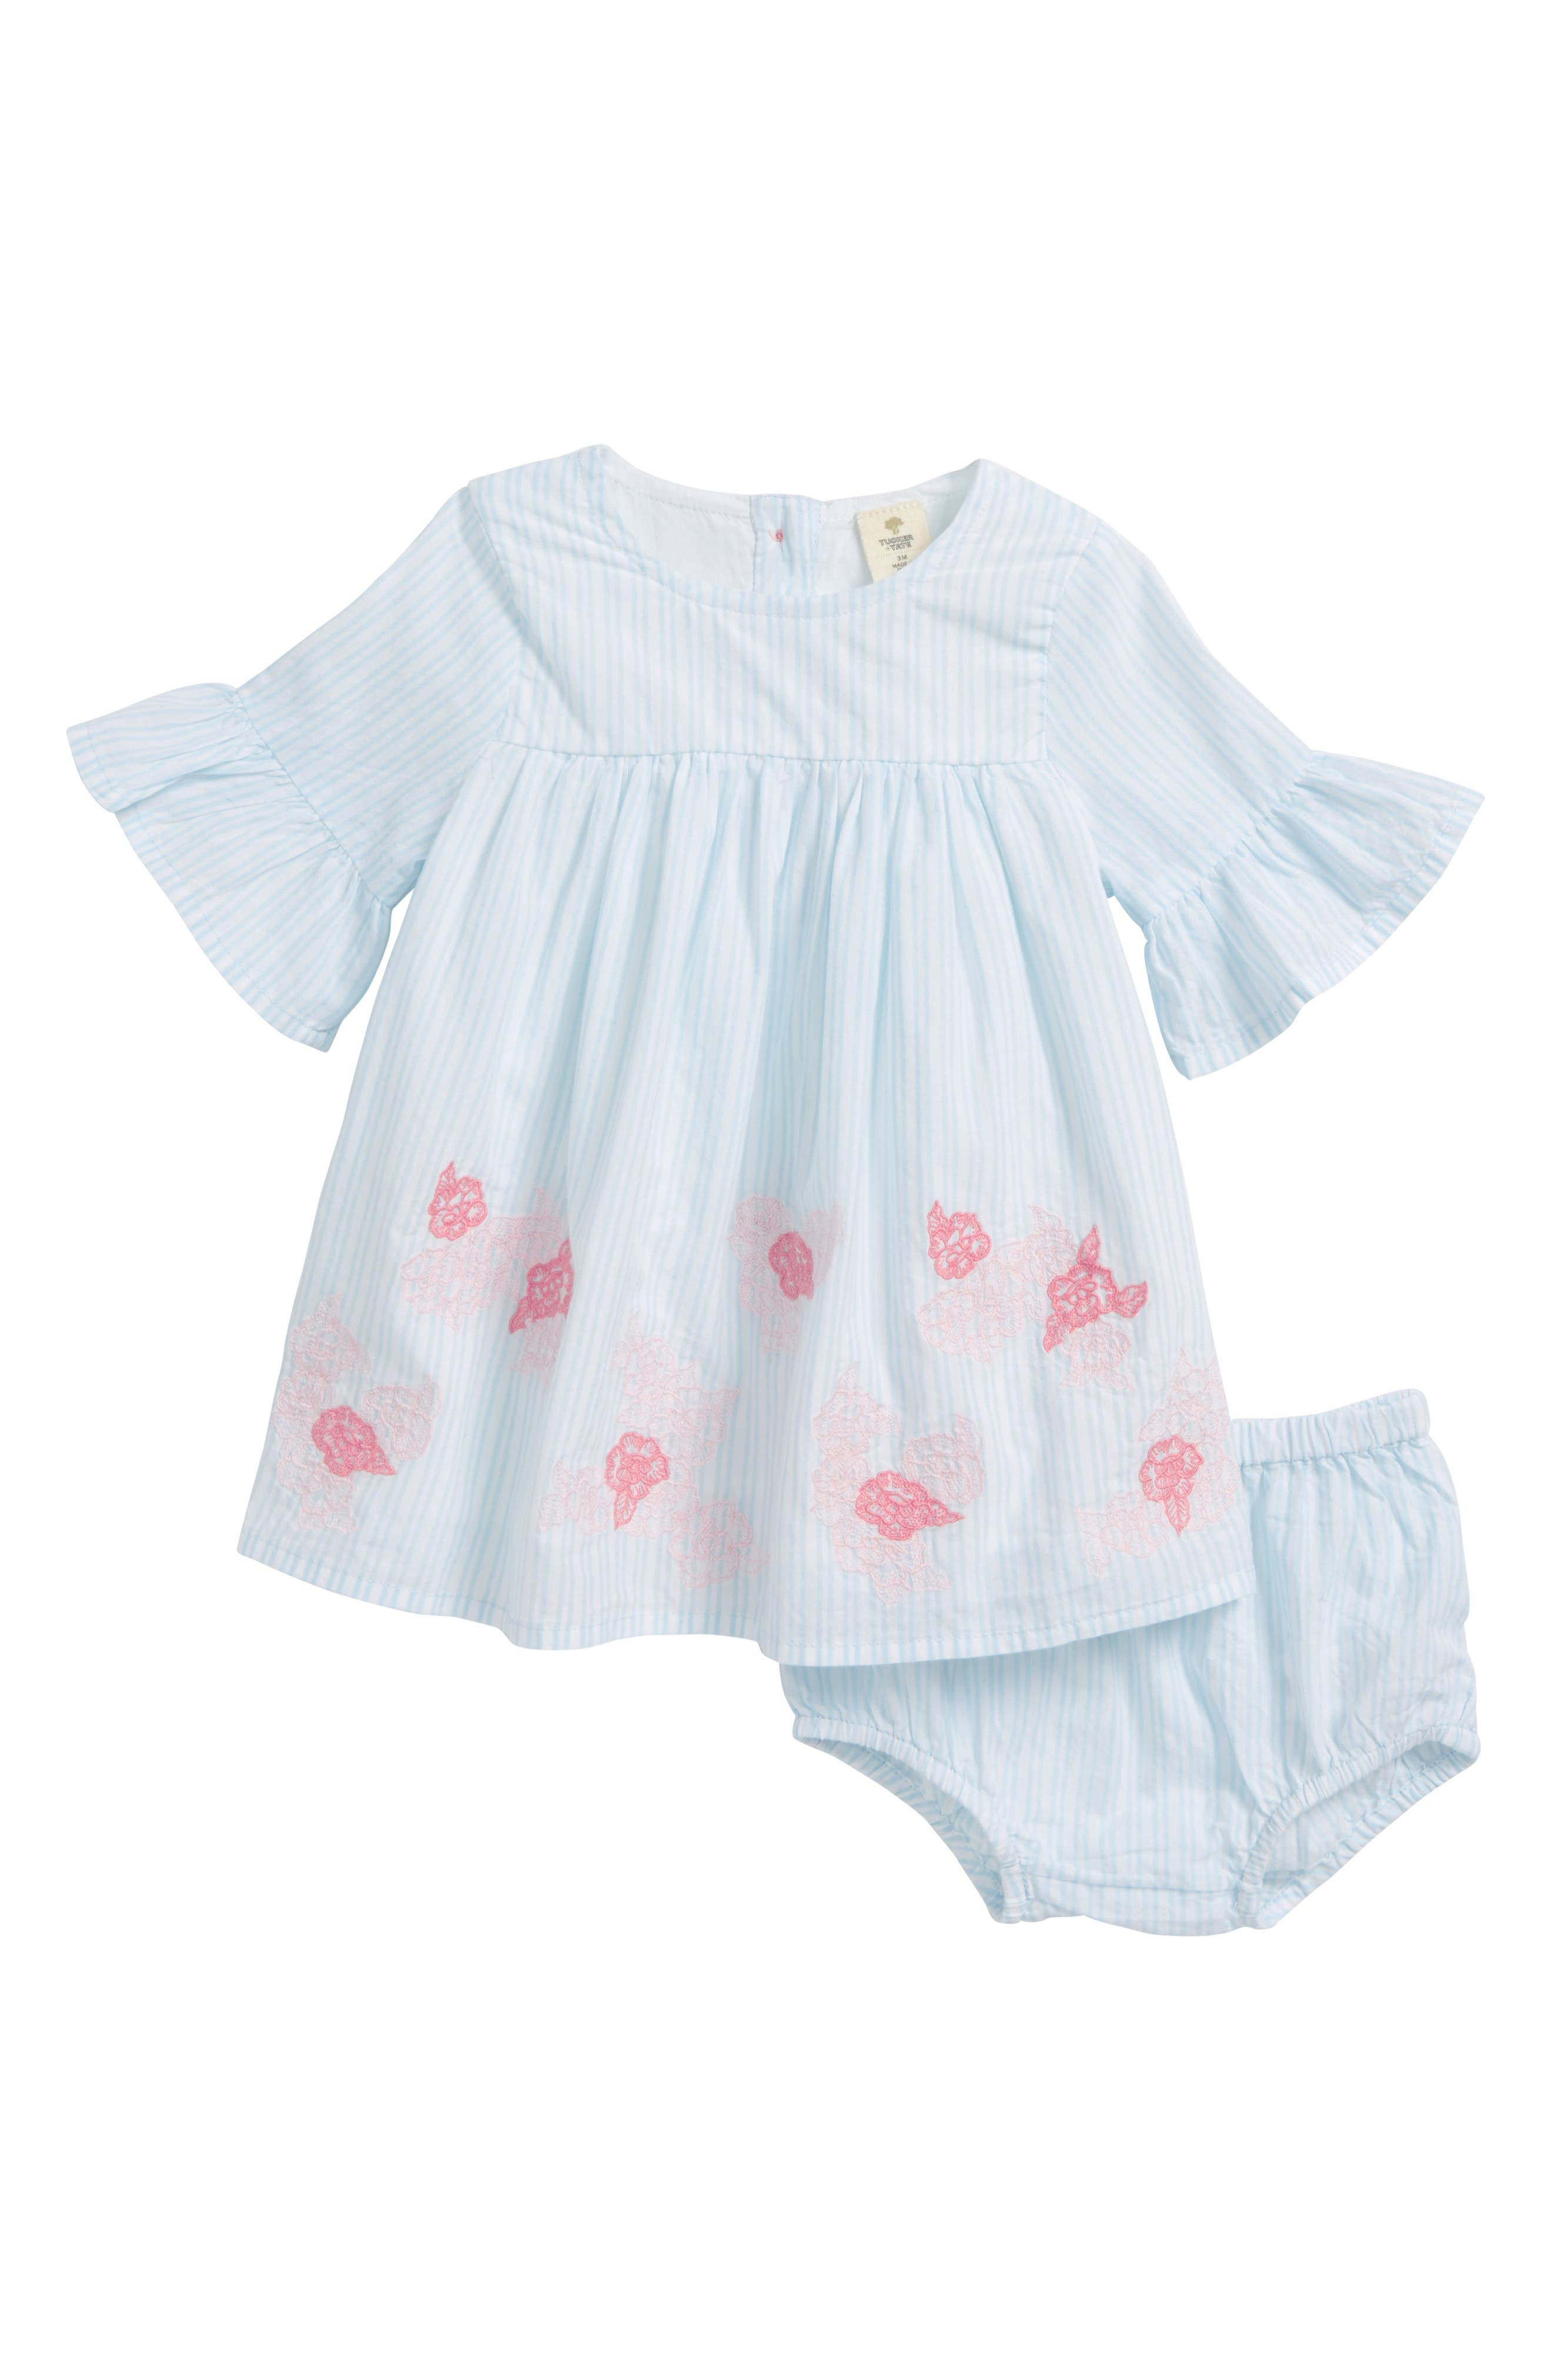 Tucker + Tate Embroidered Dress (Baby Girls)